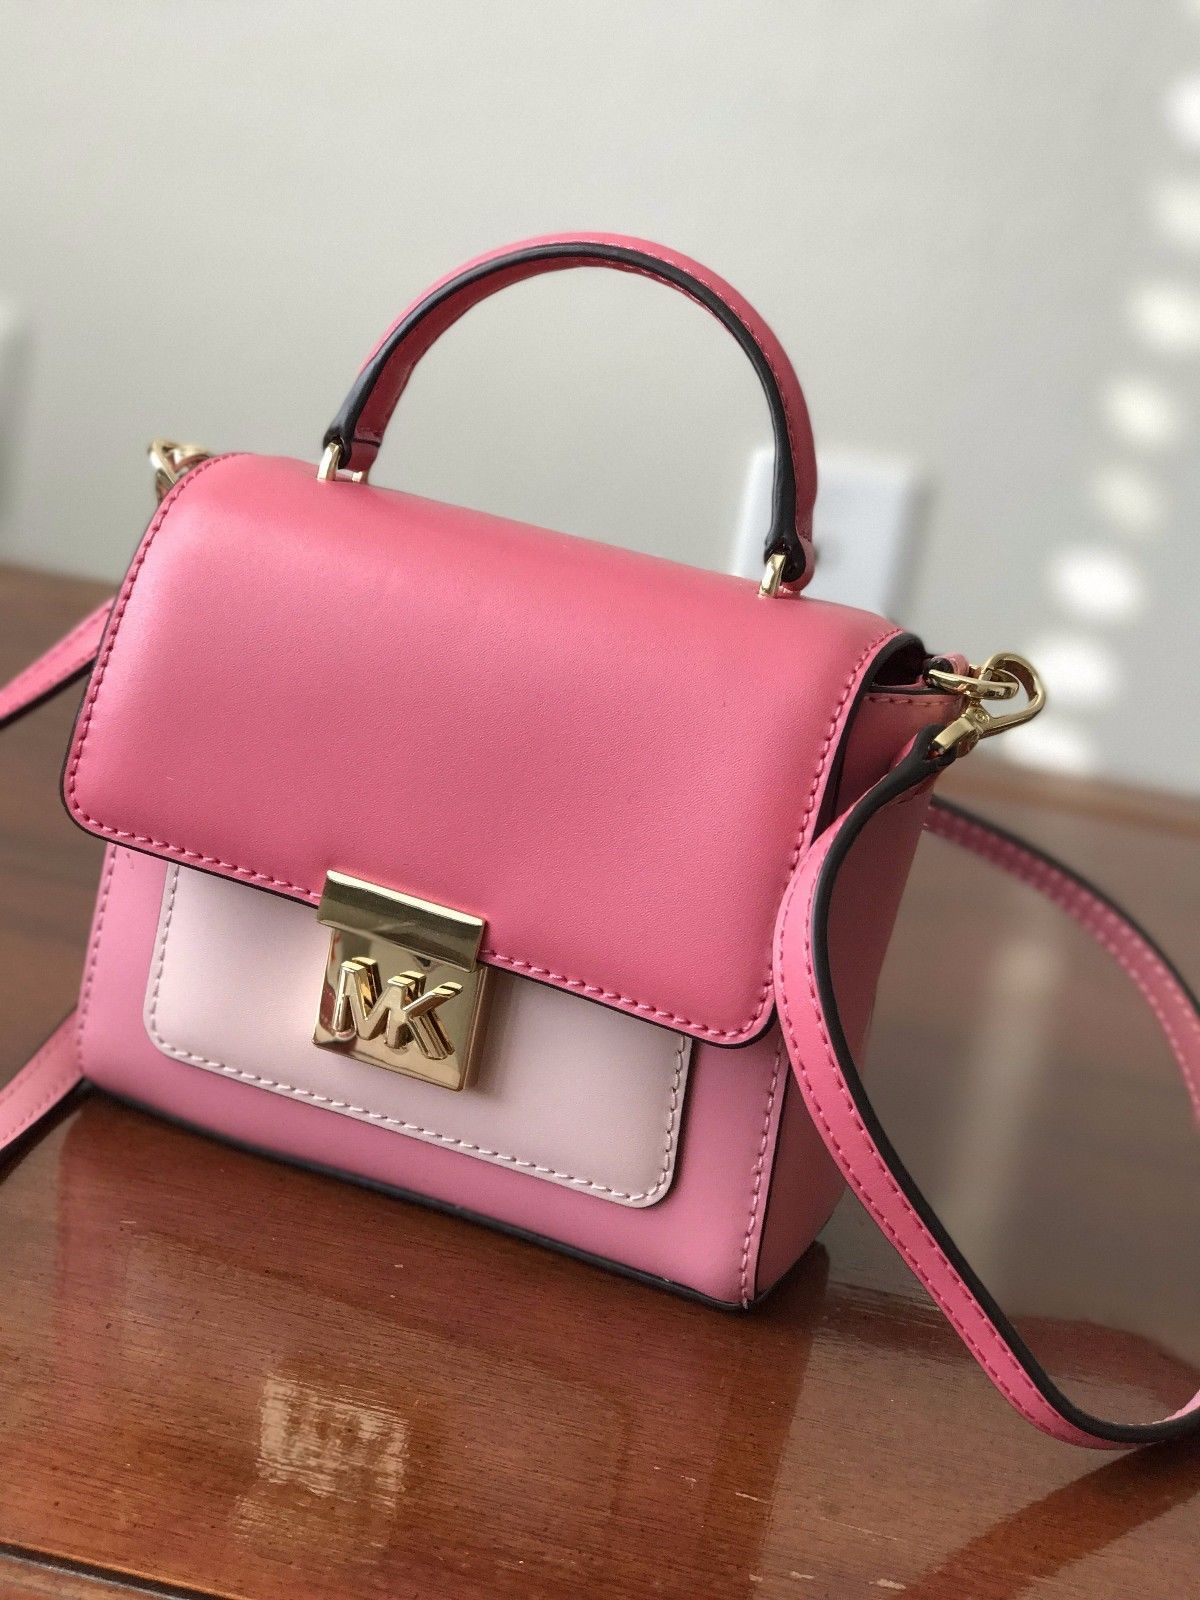 S l1600. S l1600. Previous. Michael Kors Mindy Mini Convertible Pebbled  Leather Crossbody Purse ... acffb440ca232